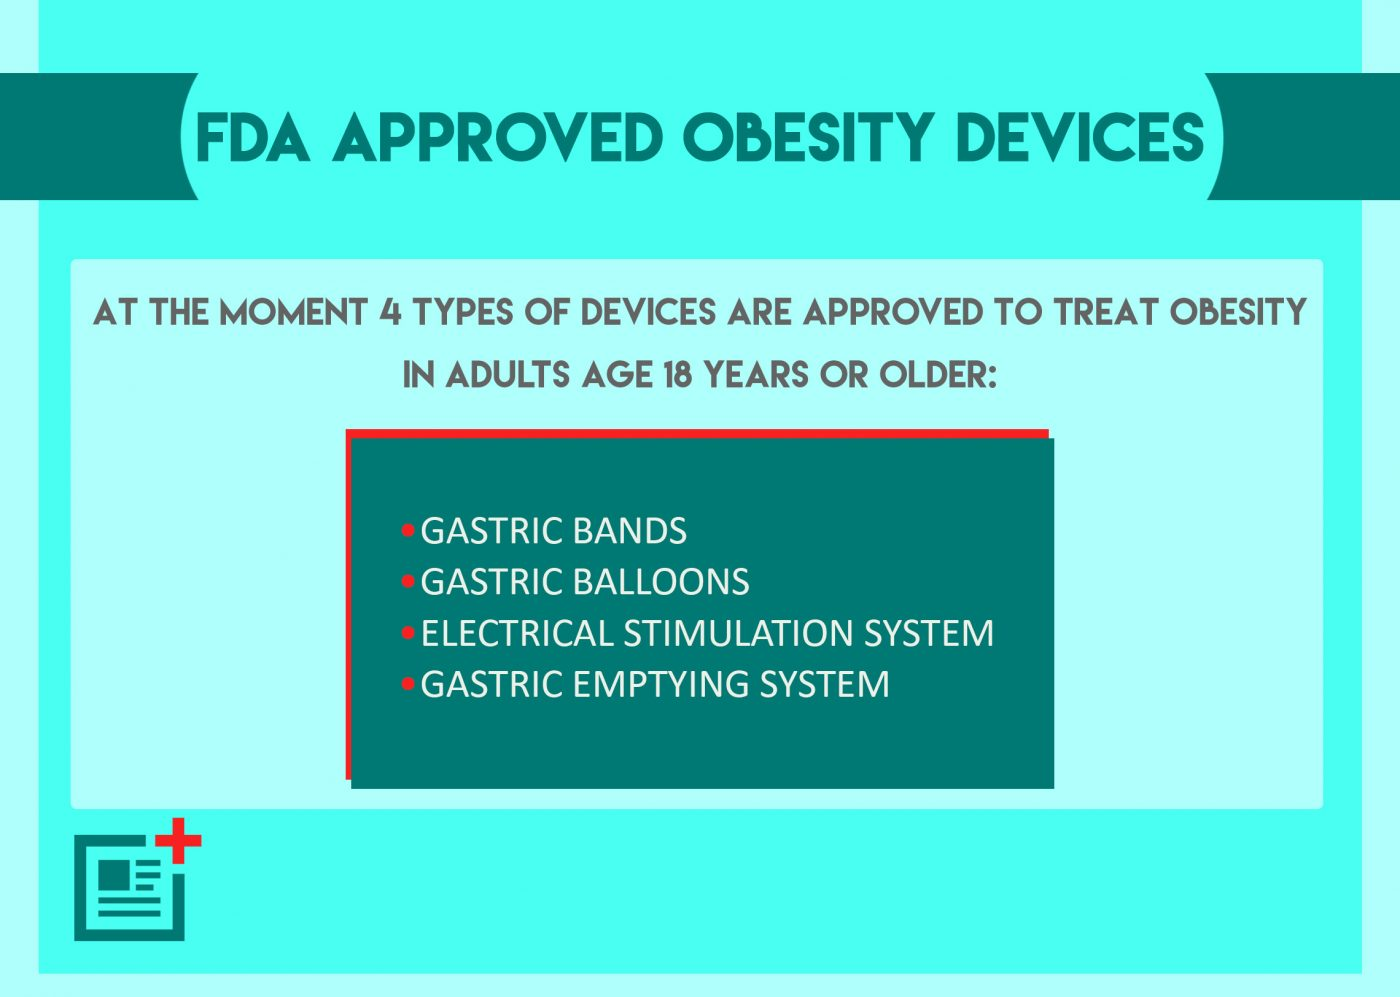 fda-approved-obesity-devices-2